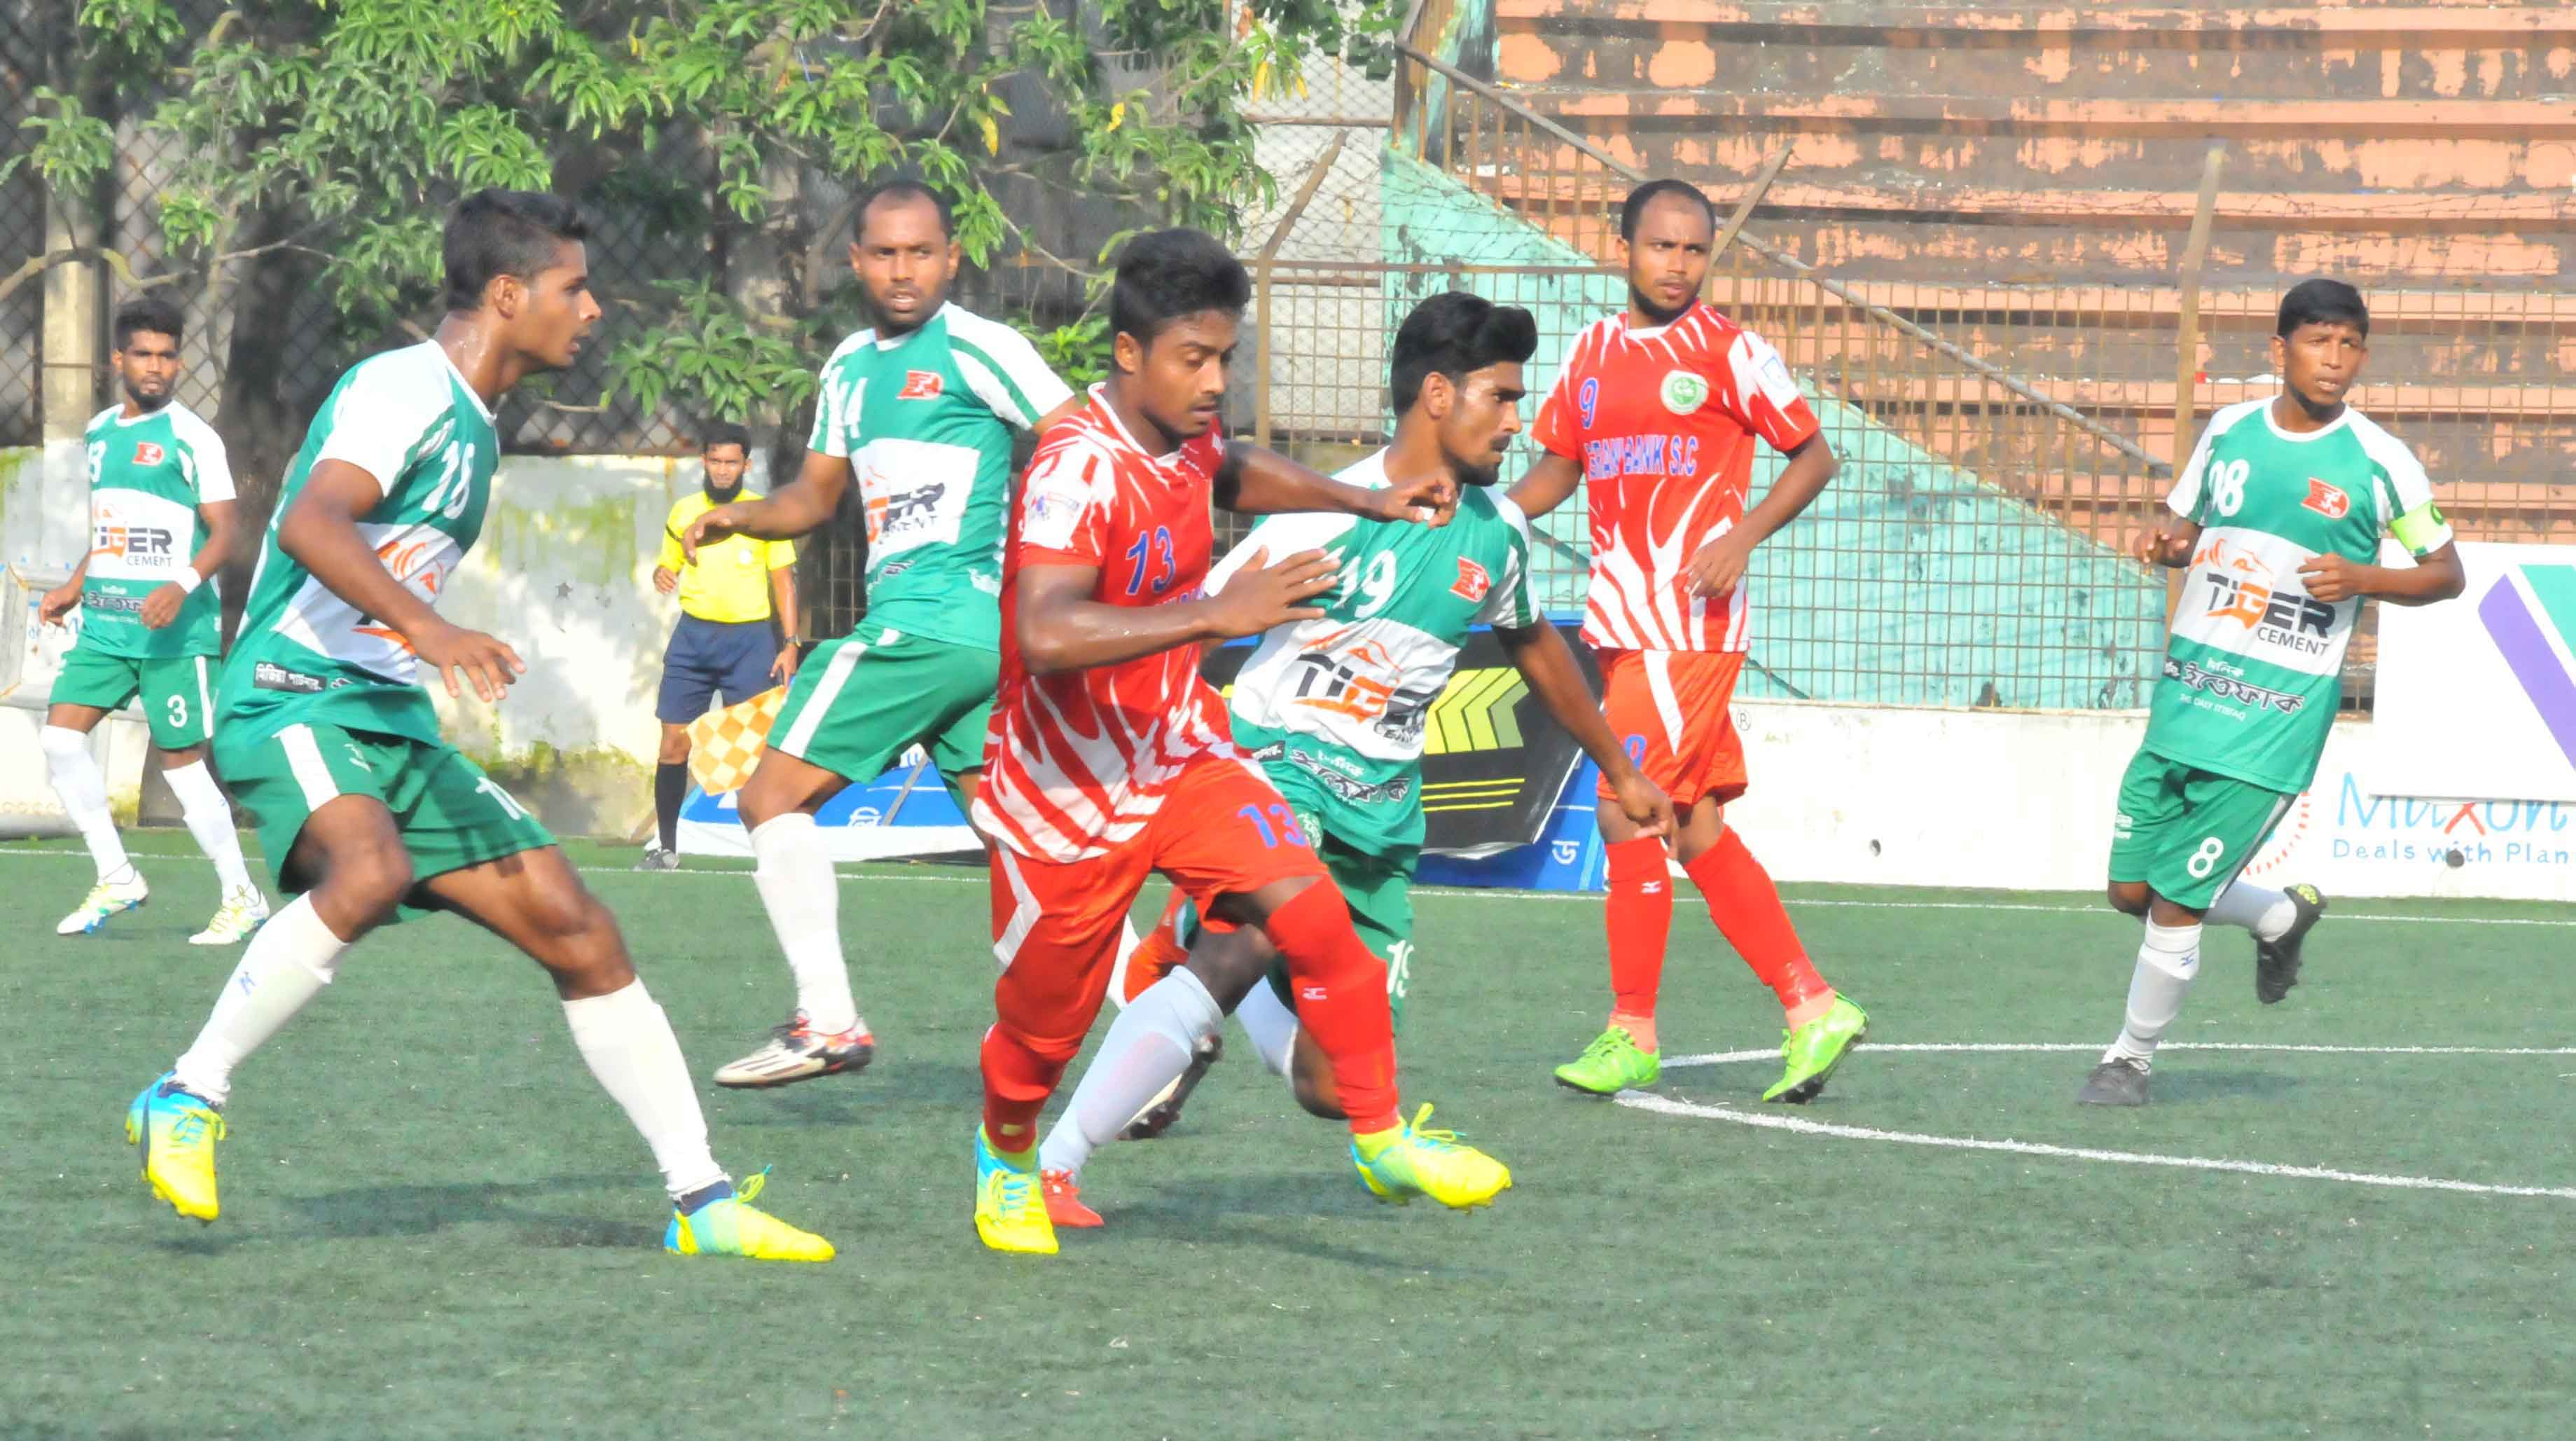 An action from the match of the Marcel Bangladesh Championship League Football between Kawranbazar Progoti Sangha and Agrani Bank Limited Sporting Club at the Bir Shreshtha Shaheed Sepoy Mohammad Mostafa Kamal Stadium in the city's Kamalapur on Thursday. Kawranbazar won the match 3-2.